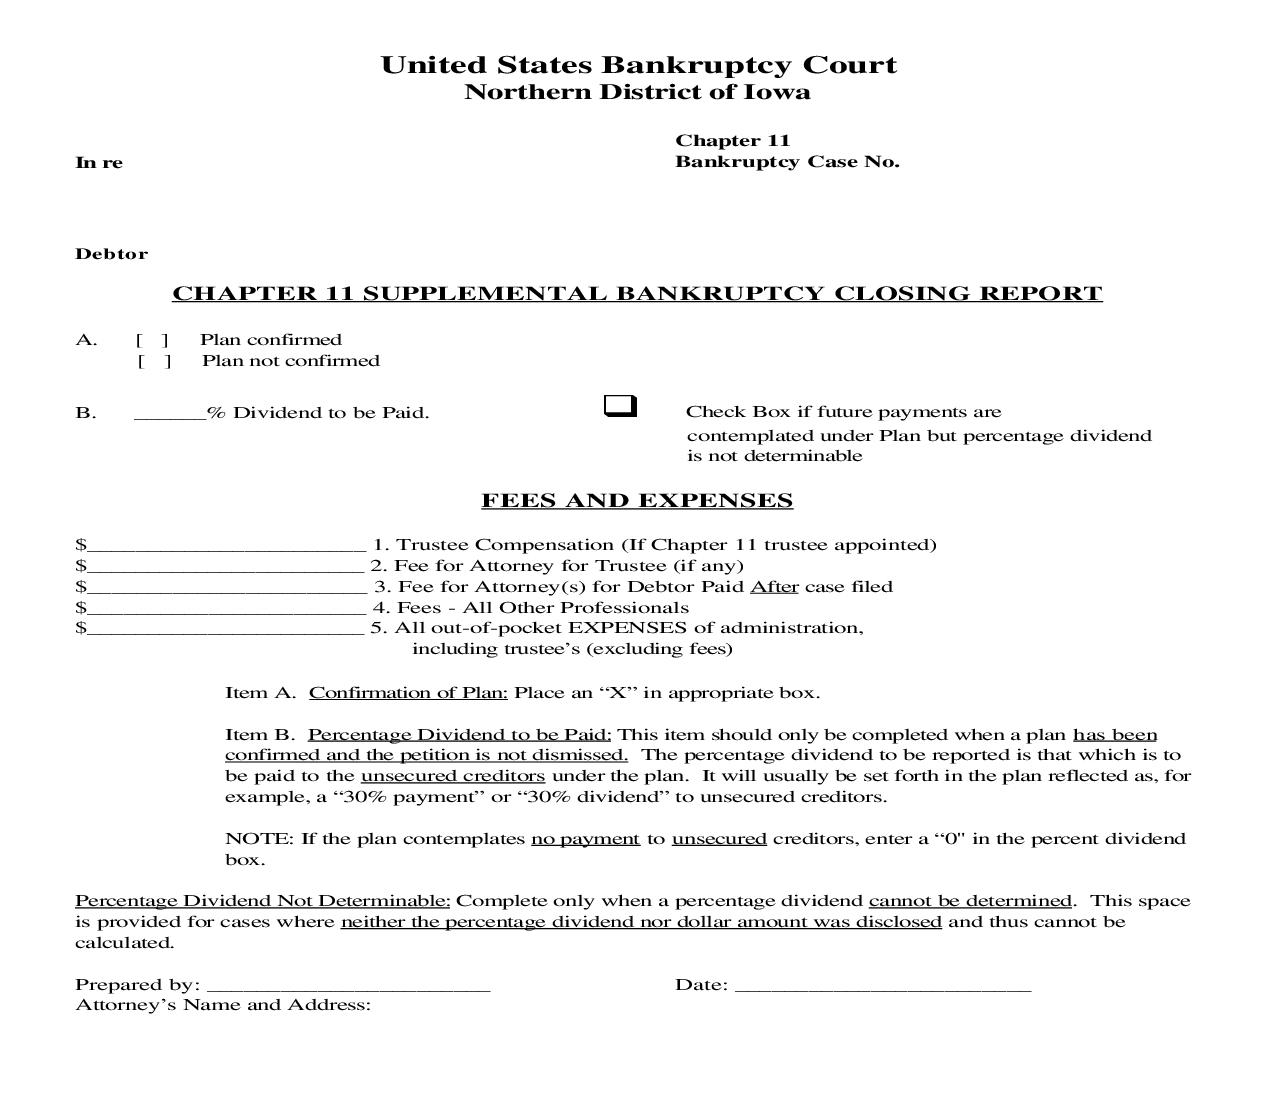 Chapter 11 Supplemental Bankruptcy Closing Report | Pdf Fpdf Doc Docx | Iowa